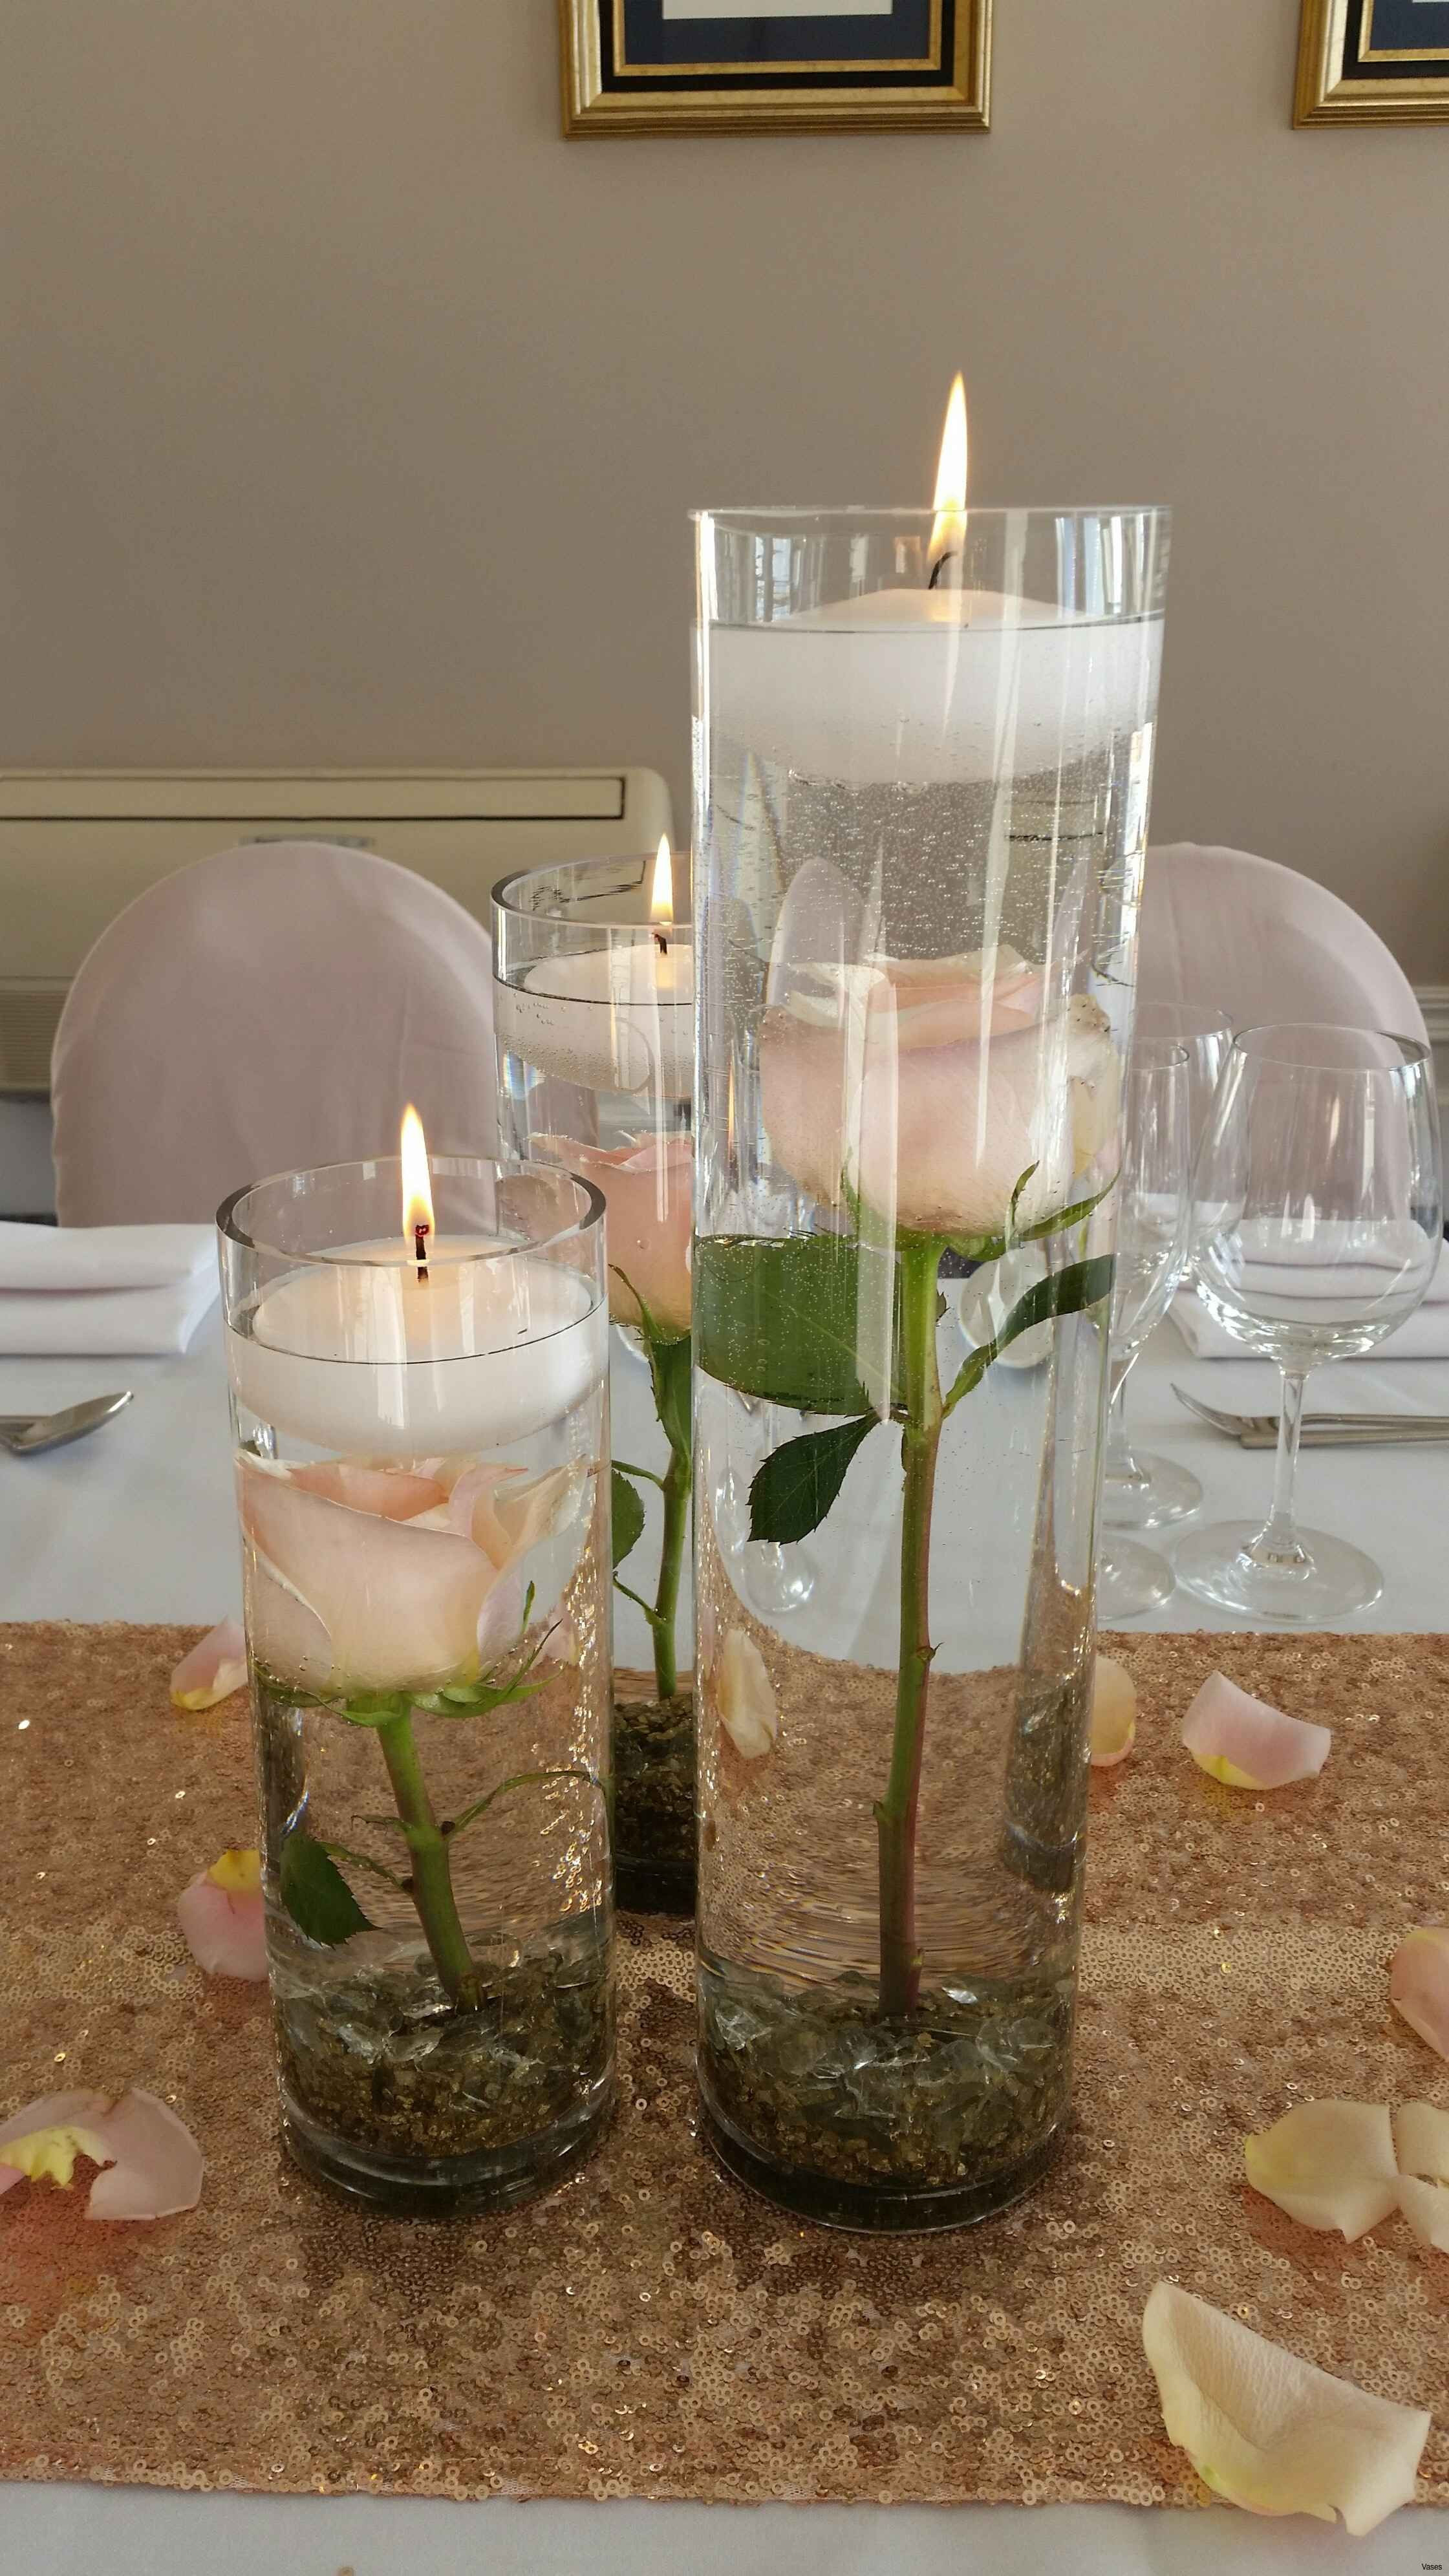 glass cylinder vases 20 of 23 tall cylinder vases the weekly world in tall vase centerpiece ideas vases floating flowers in centerpieces